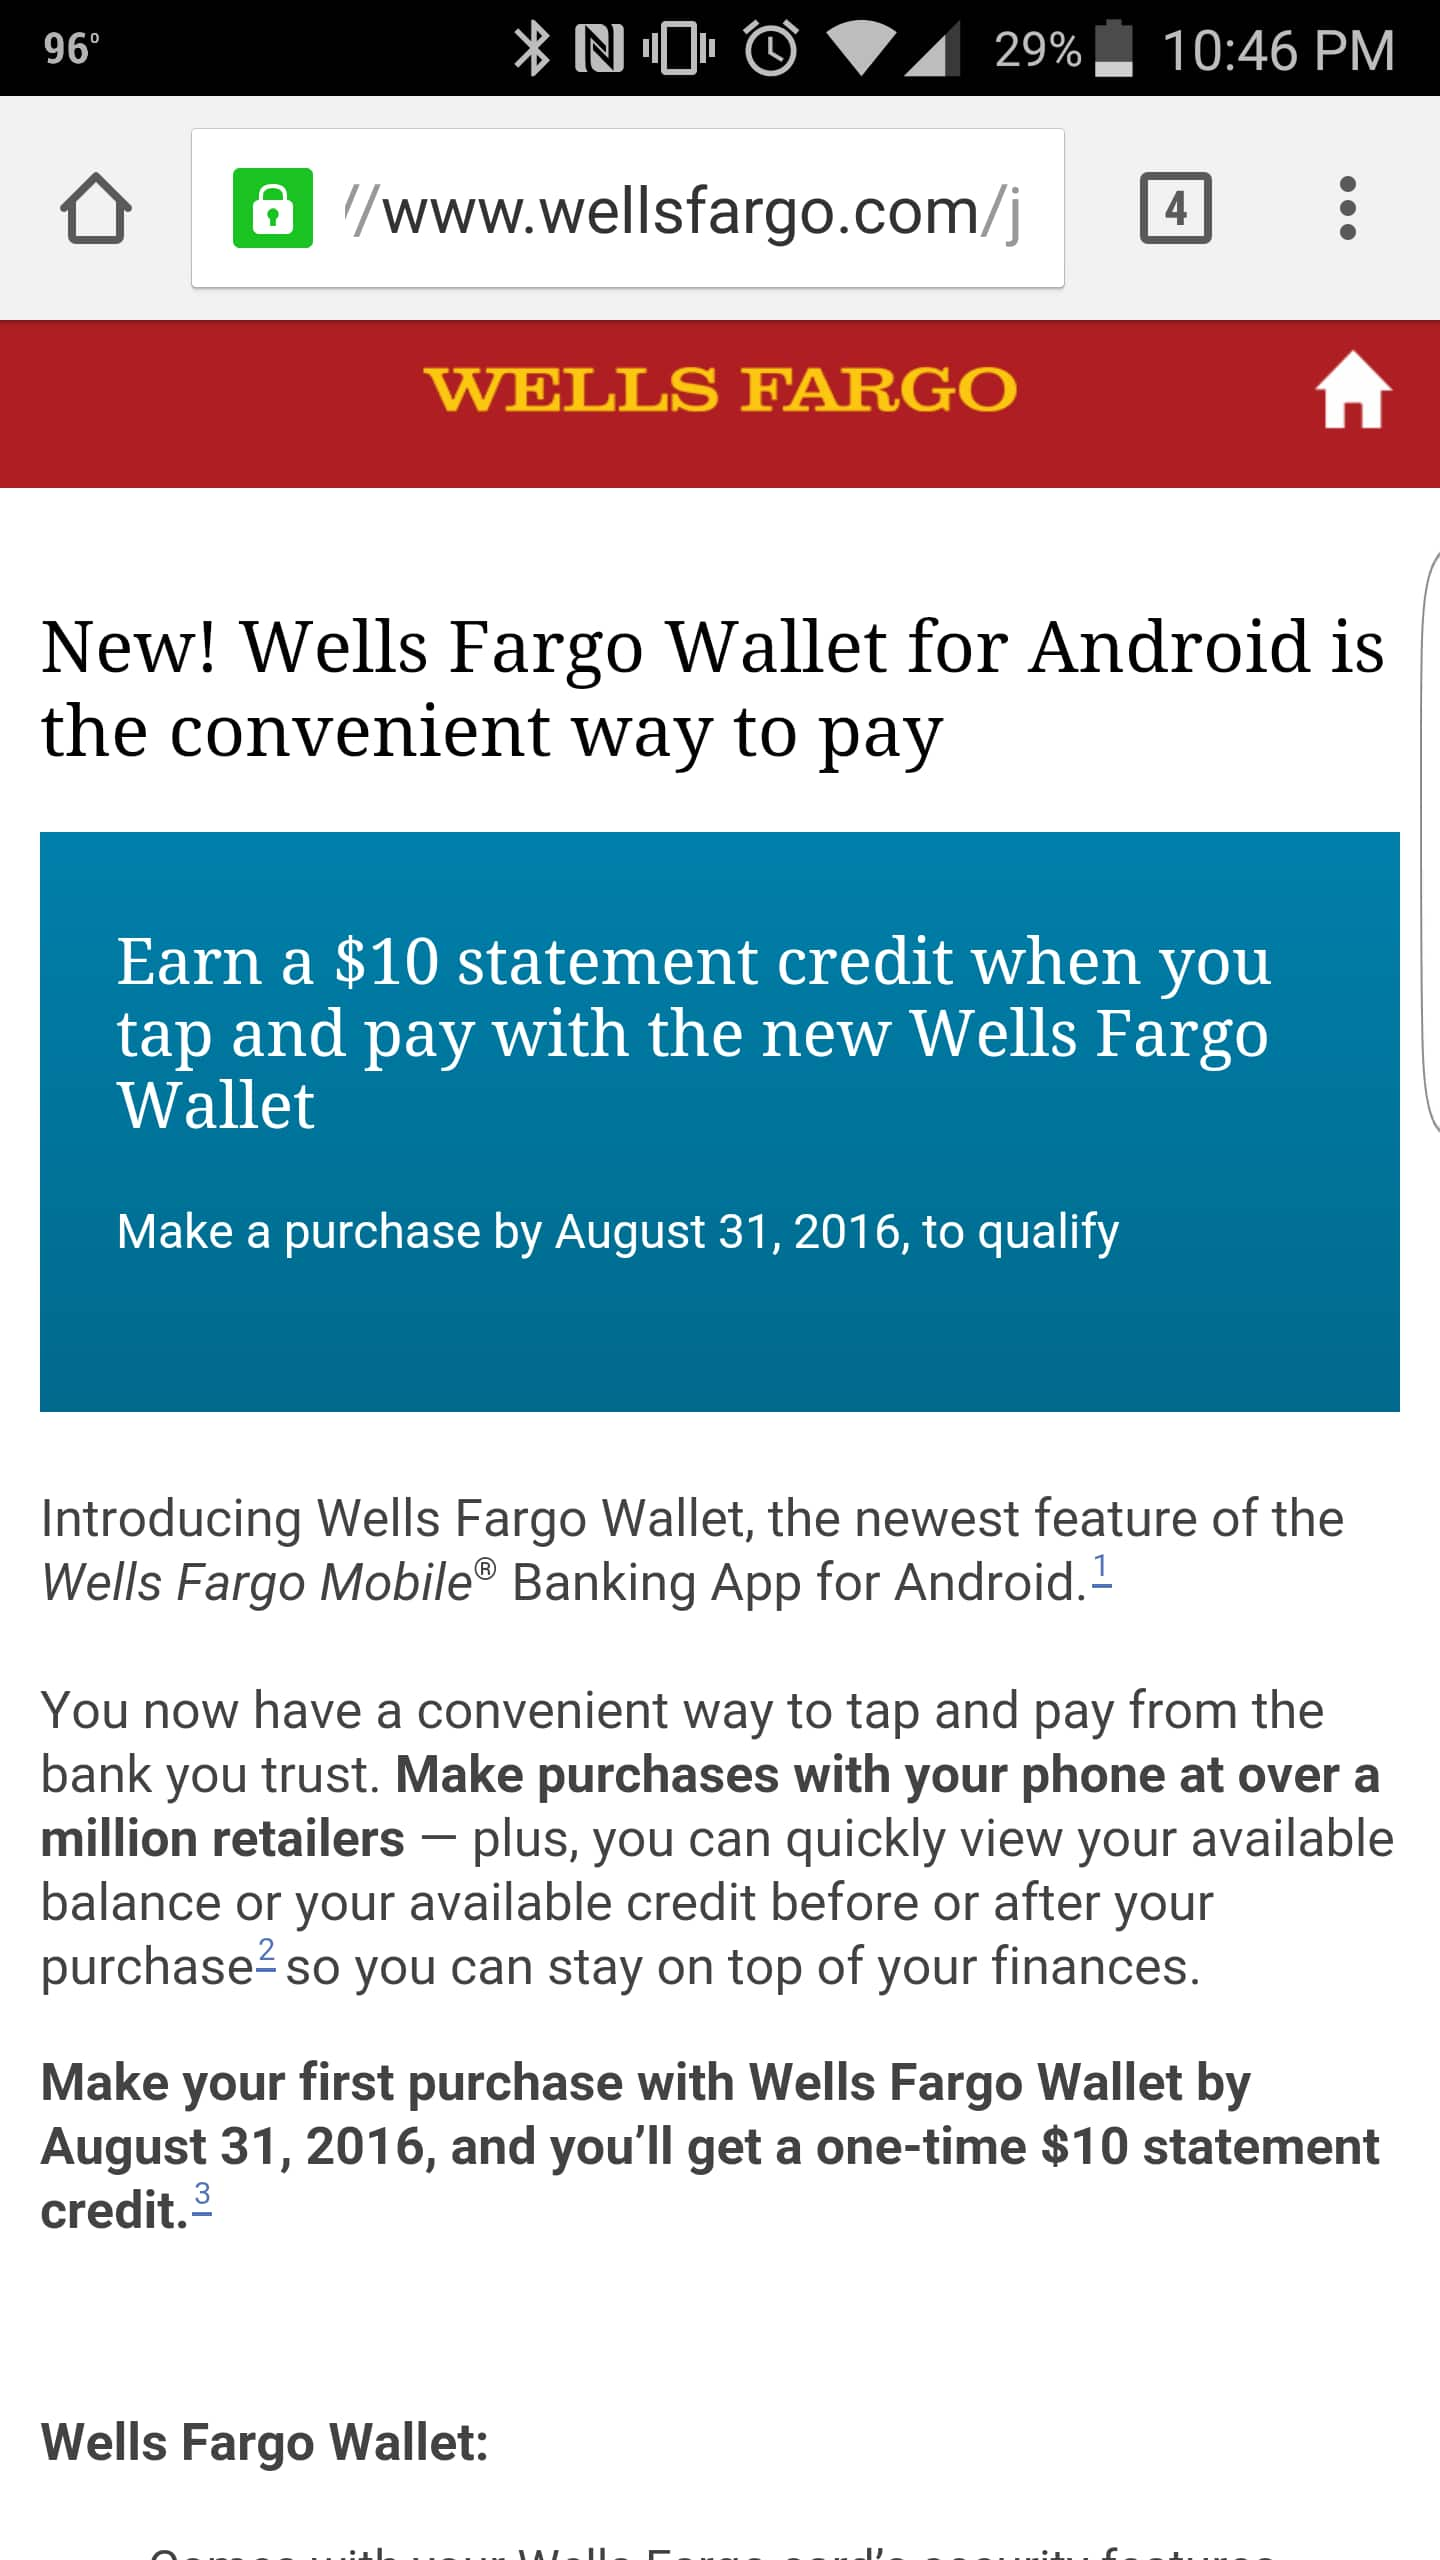 $10 credit for using wells Fargo wallet for android by August 31 (wells Fargo customers only)